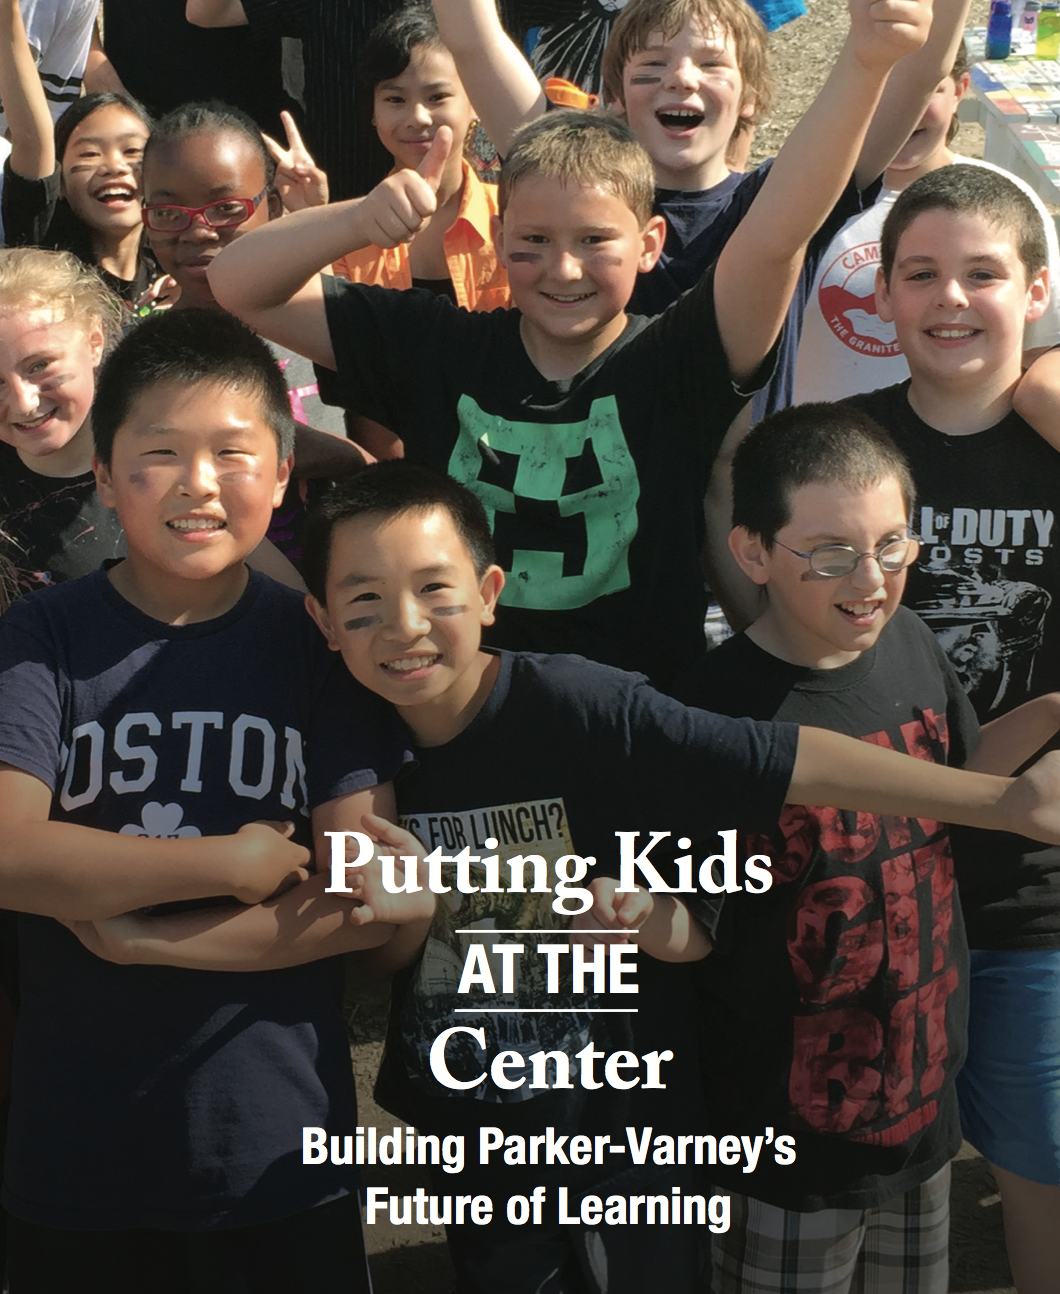 putting kids at the center: Building parker varney's future of learning, august 2015